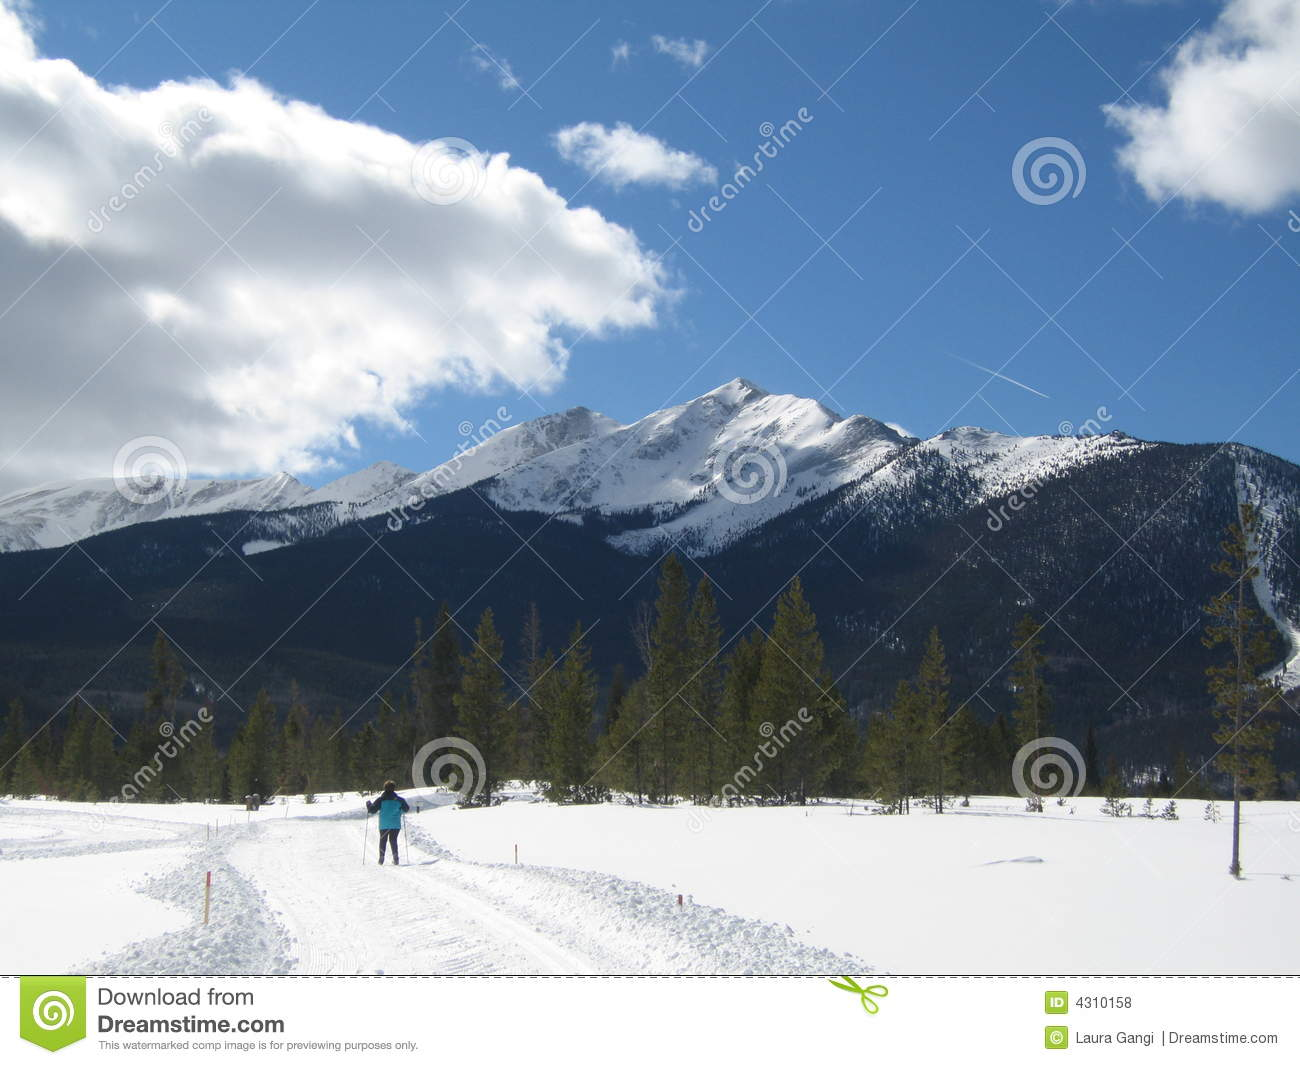 Cross Country Skier with Snowy Peak